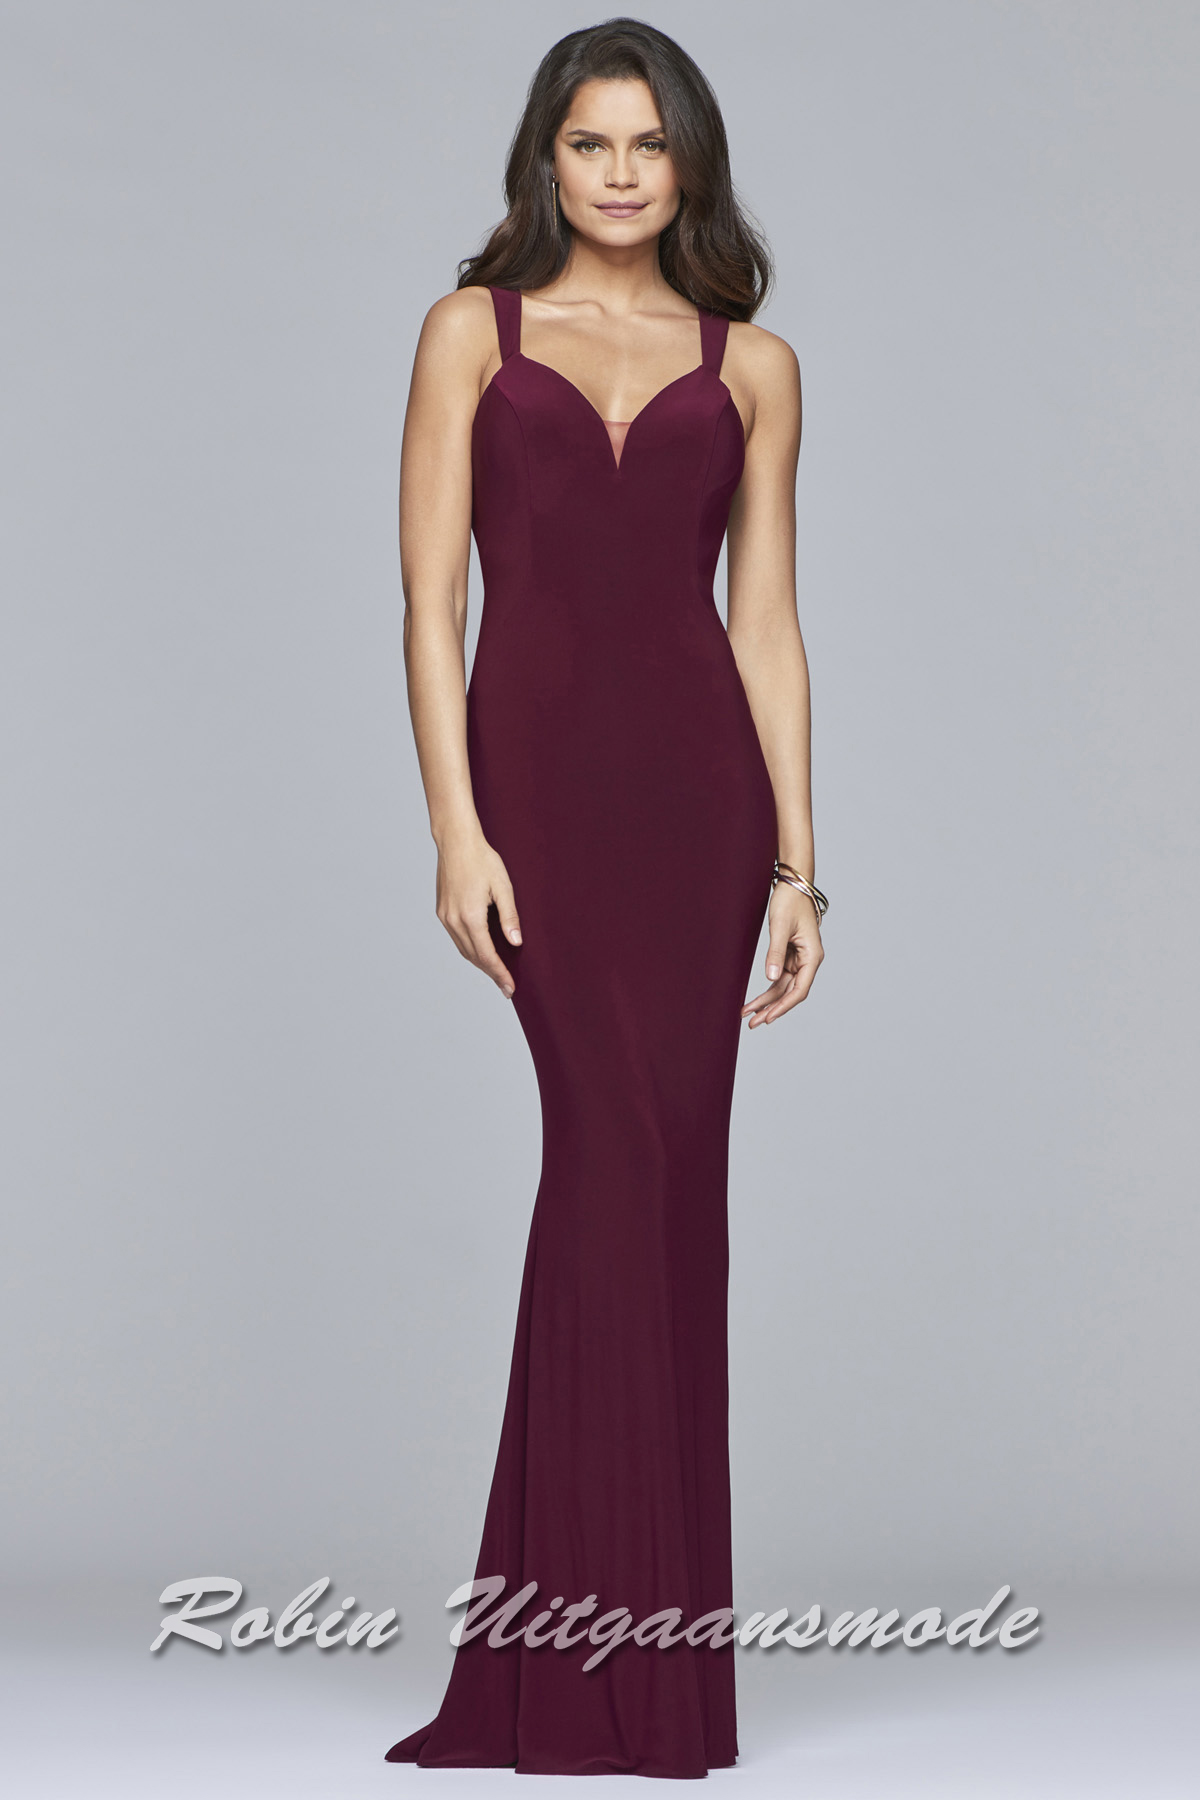 ac06e4f1175 Form-fitting long prom dress with a beautiful plunging V-neck